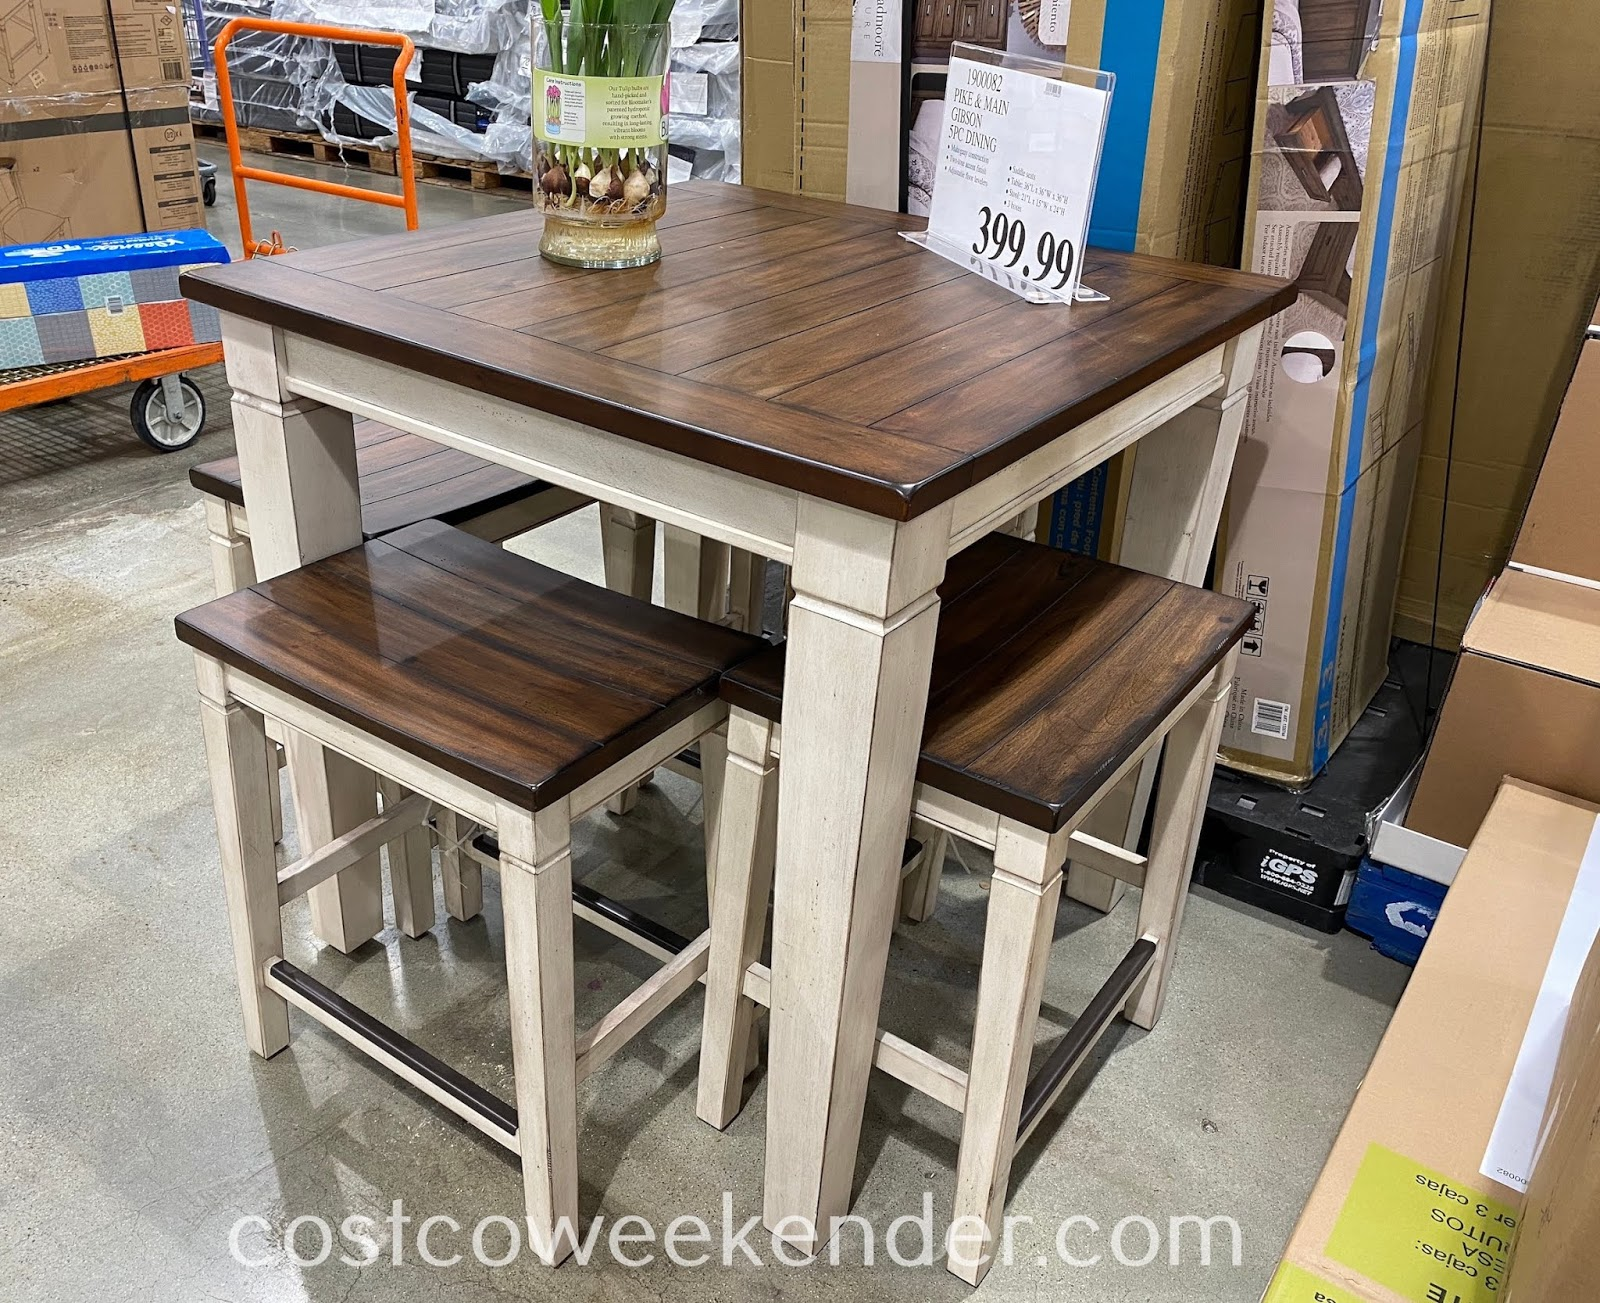 Ensure you have a proper place to have a meal with your family with the Pike & Main Gibson Counter Height Dining Set